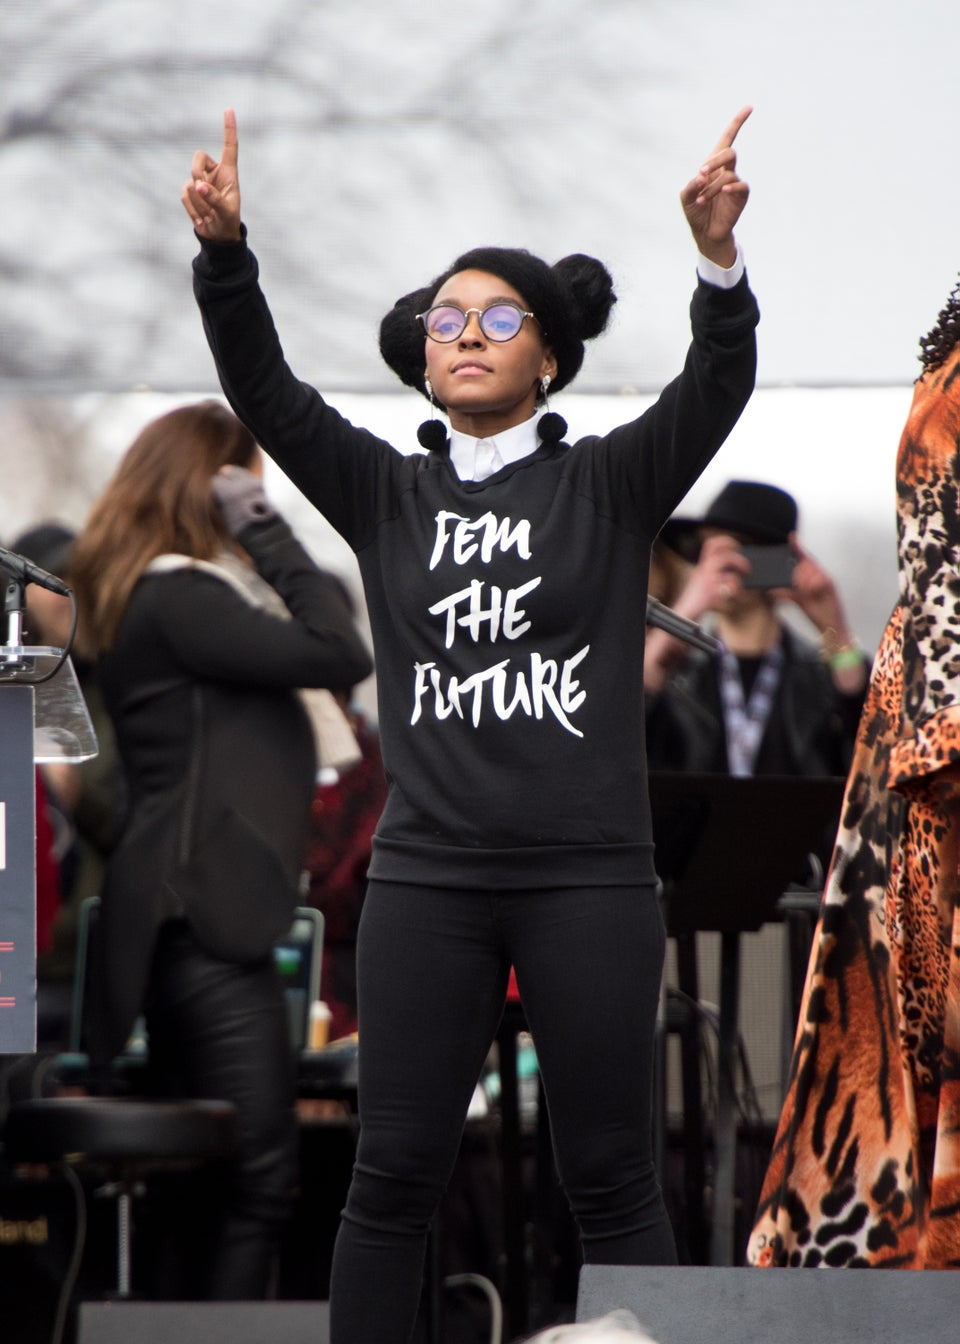 Why We Predict That Black Women Will Make Major Political Fashion Statements This Year